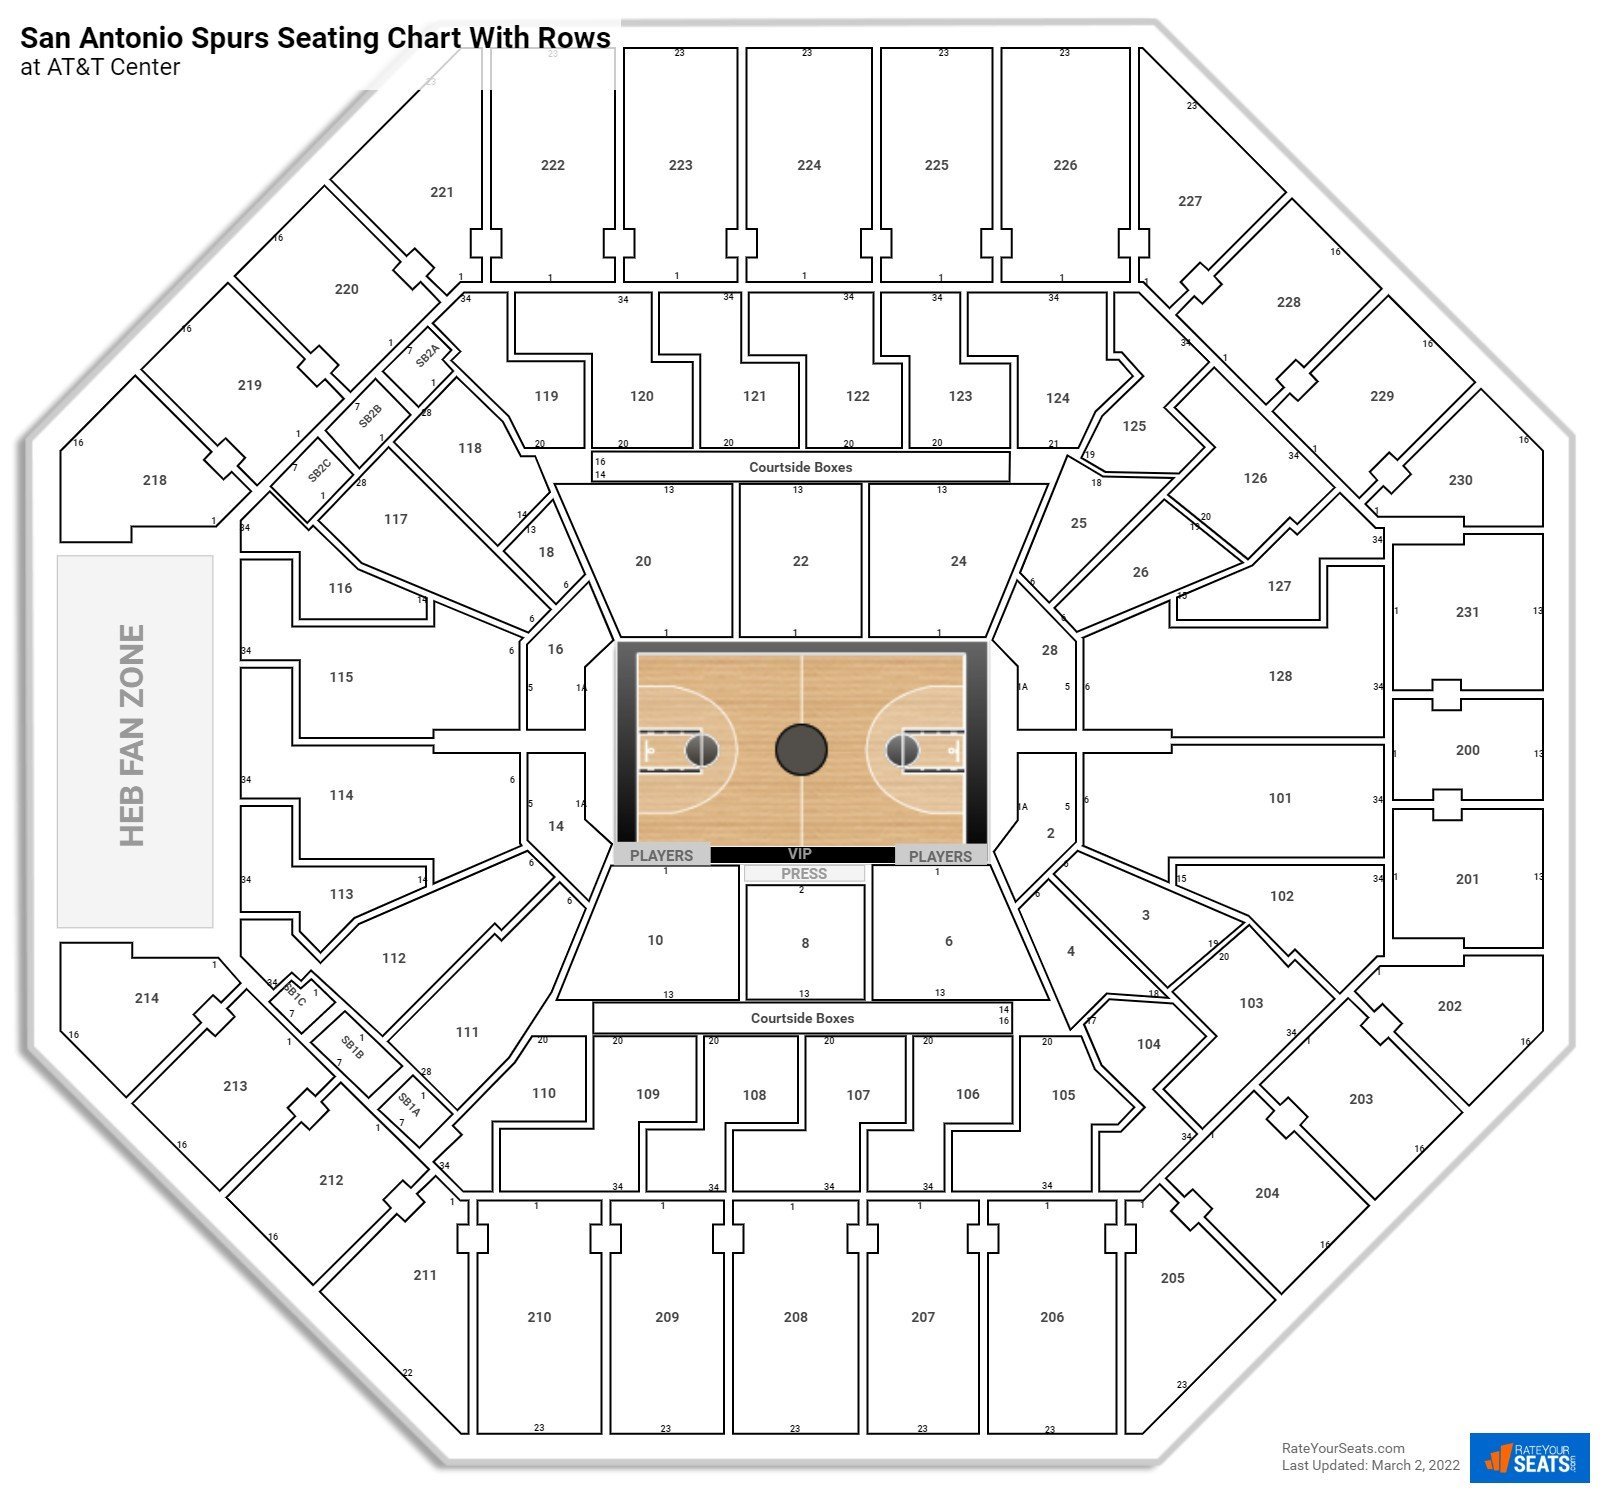 AT&T Center seating chart with rows basketball